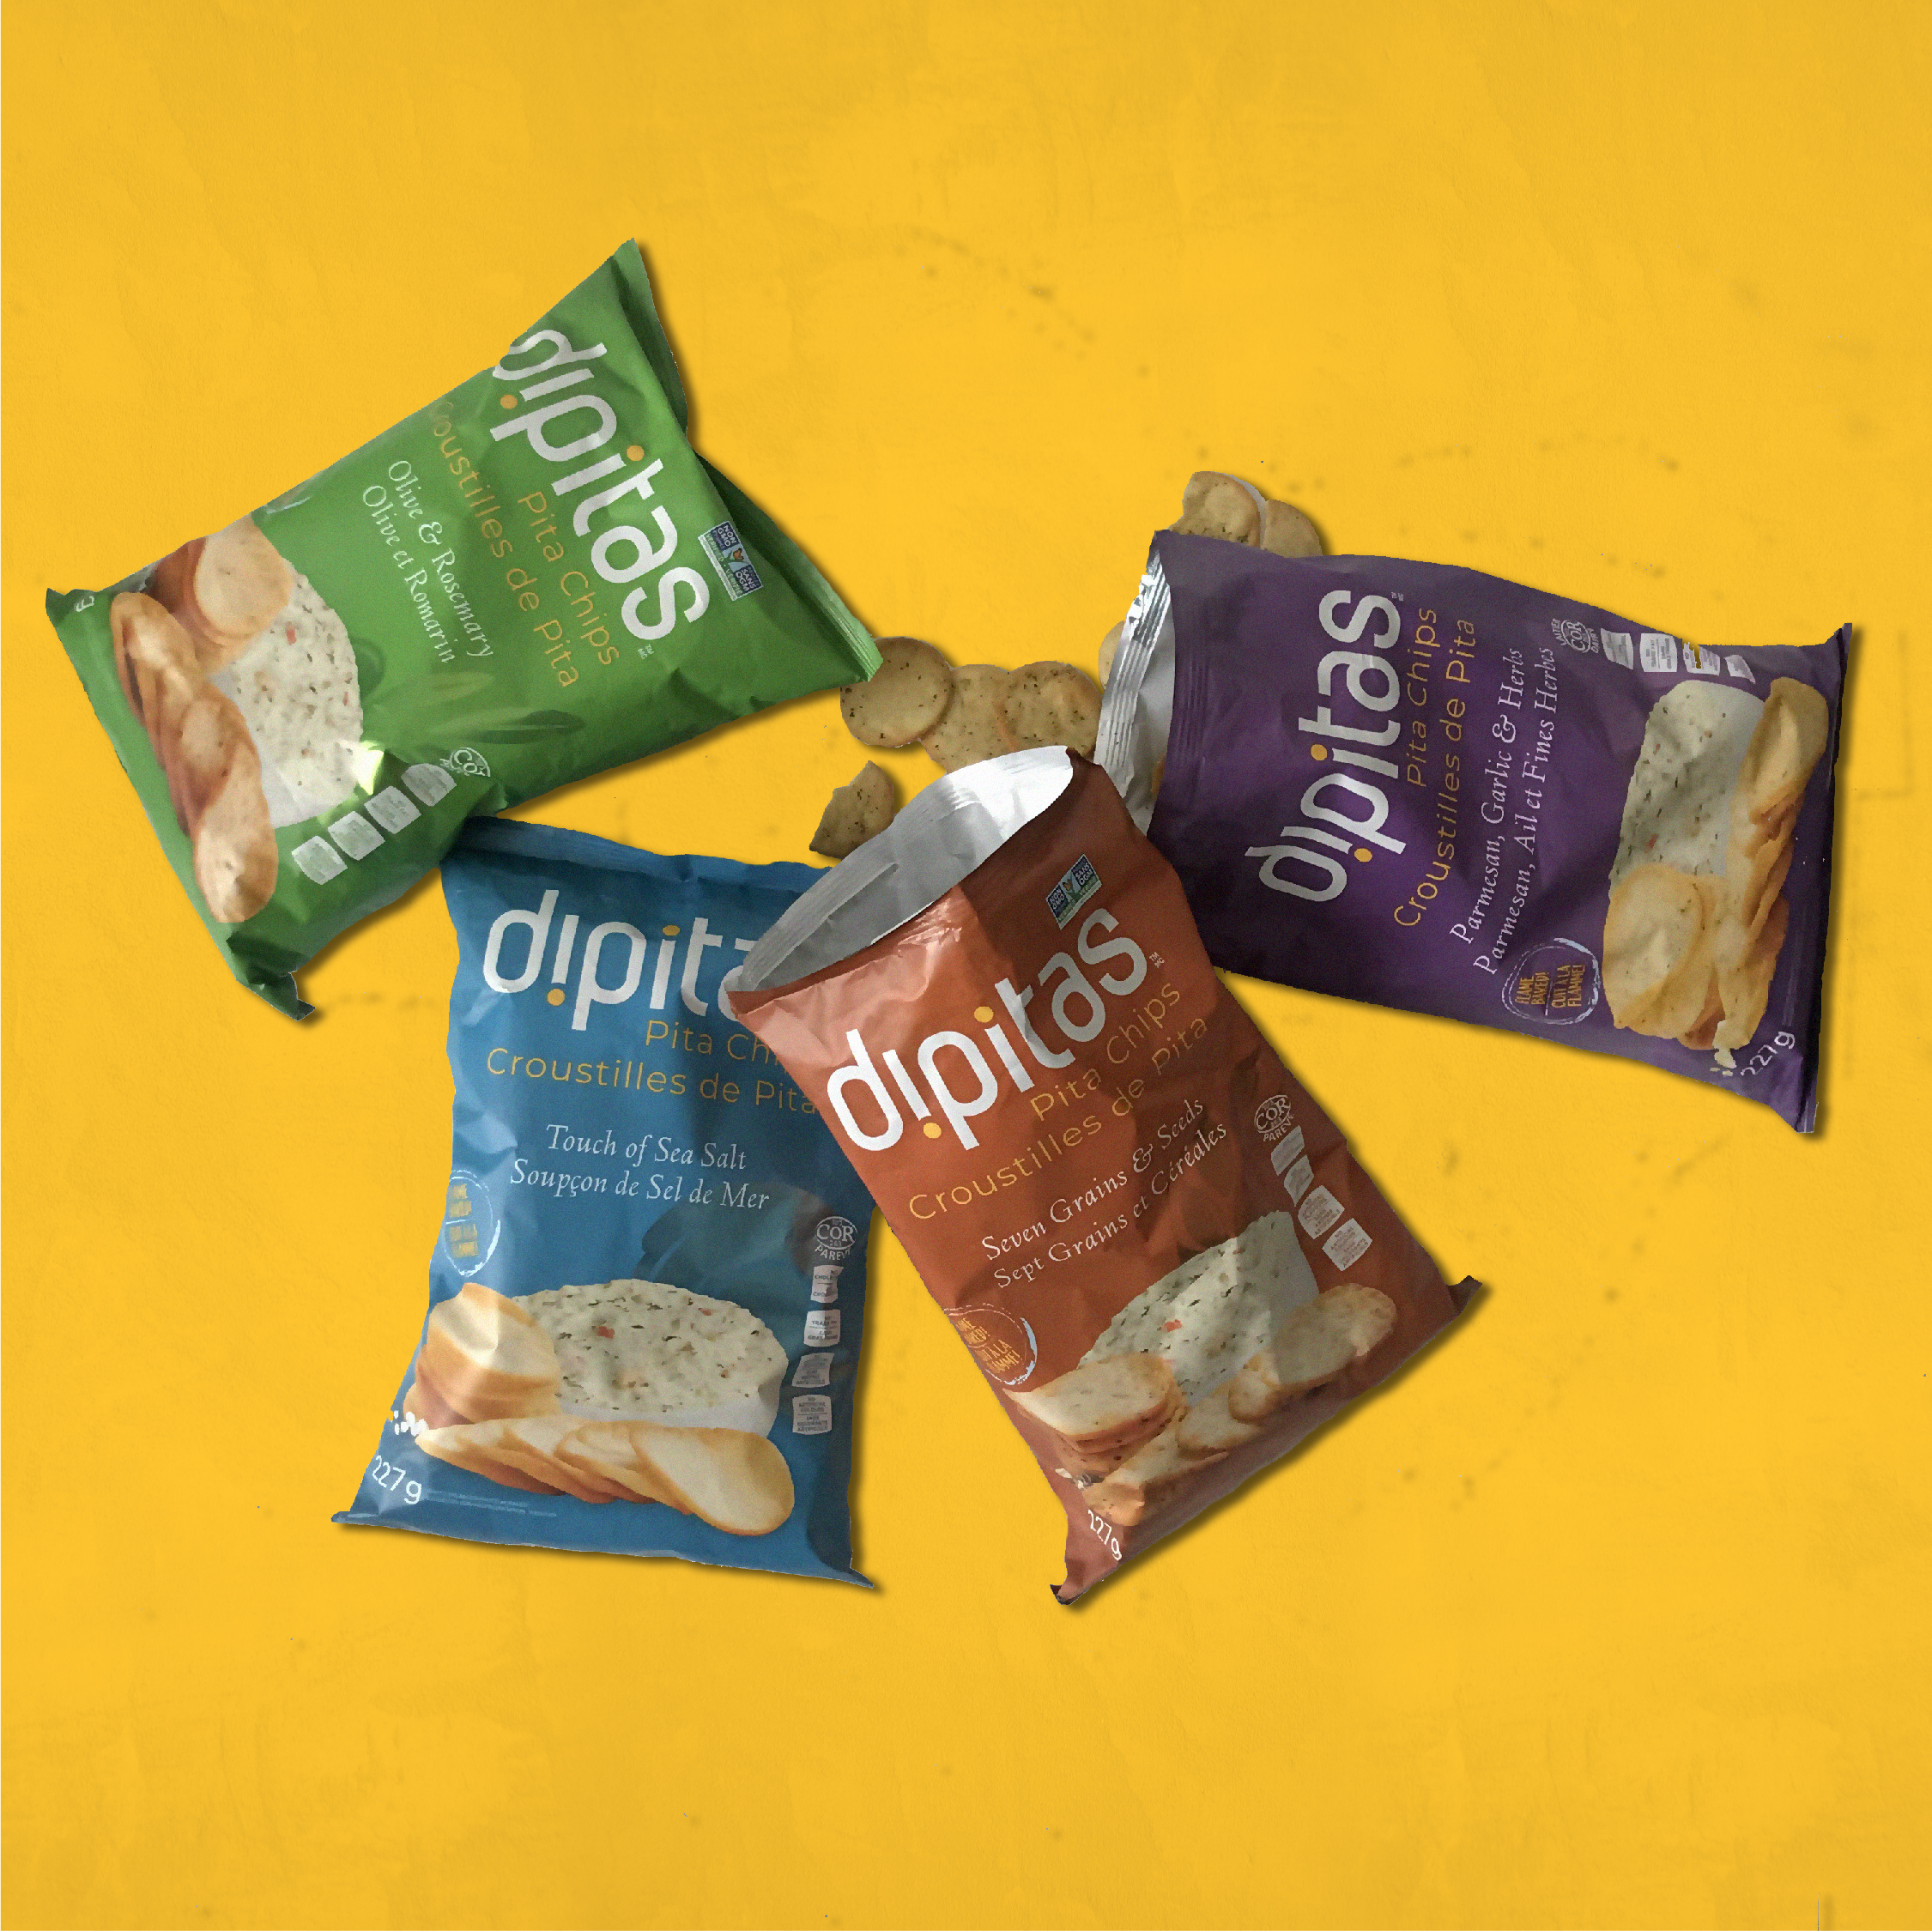 Packaging work for Dipitas, a baked snack company